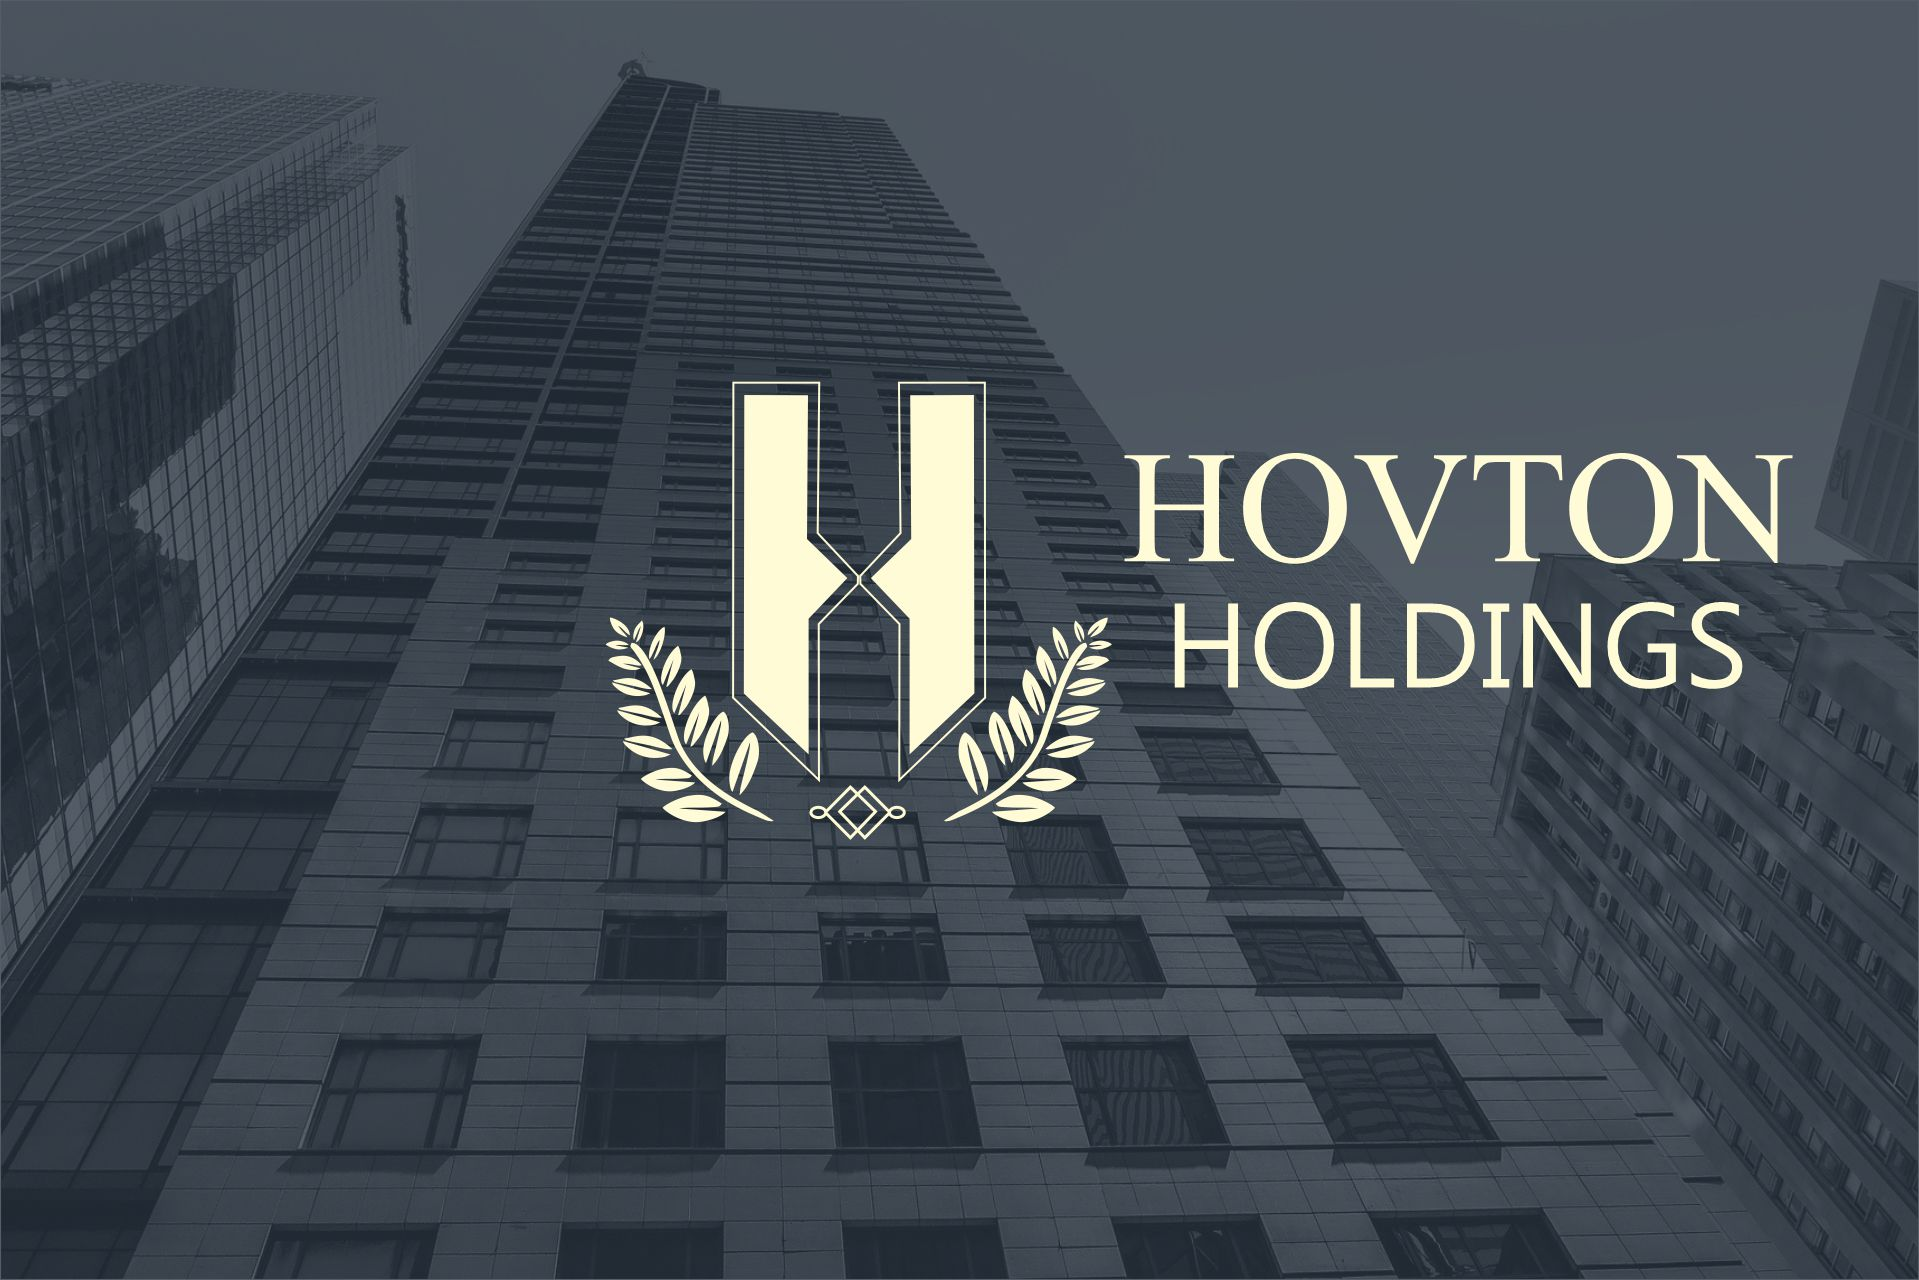 Hovton Holdings - Image from Pixabay